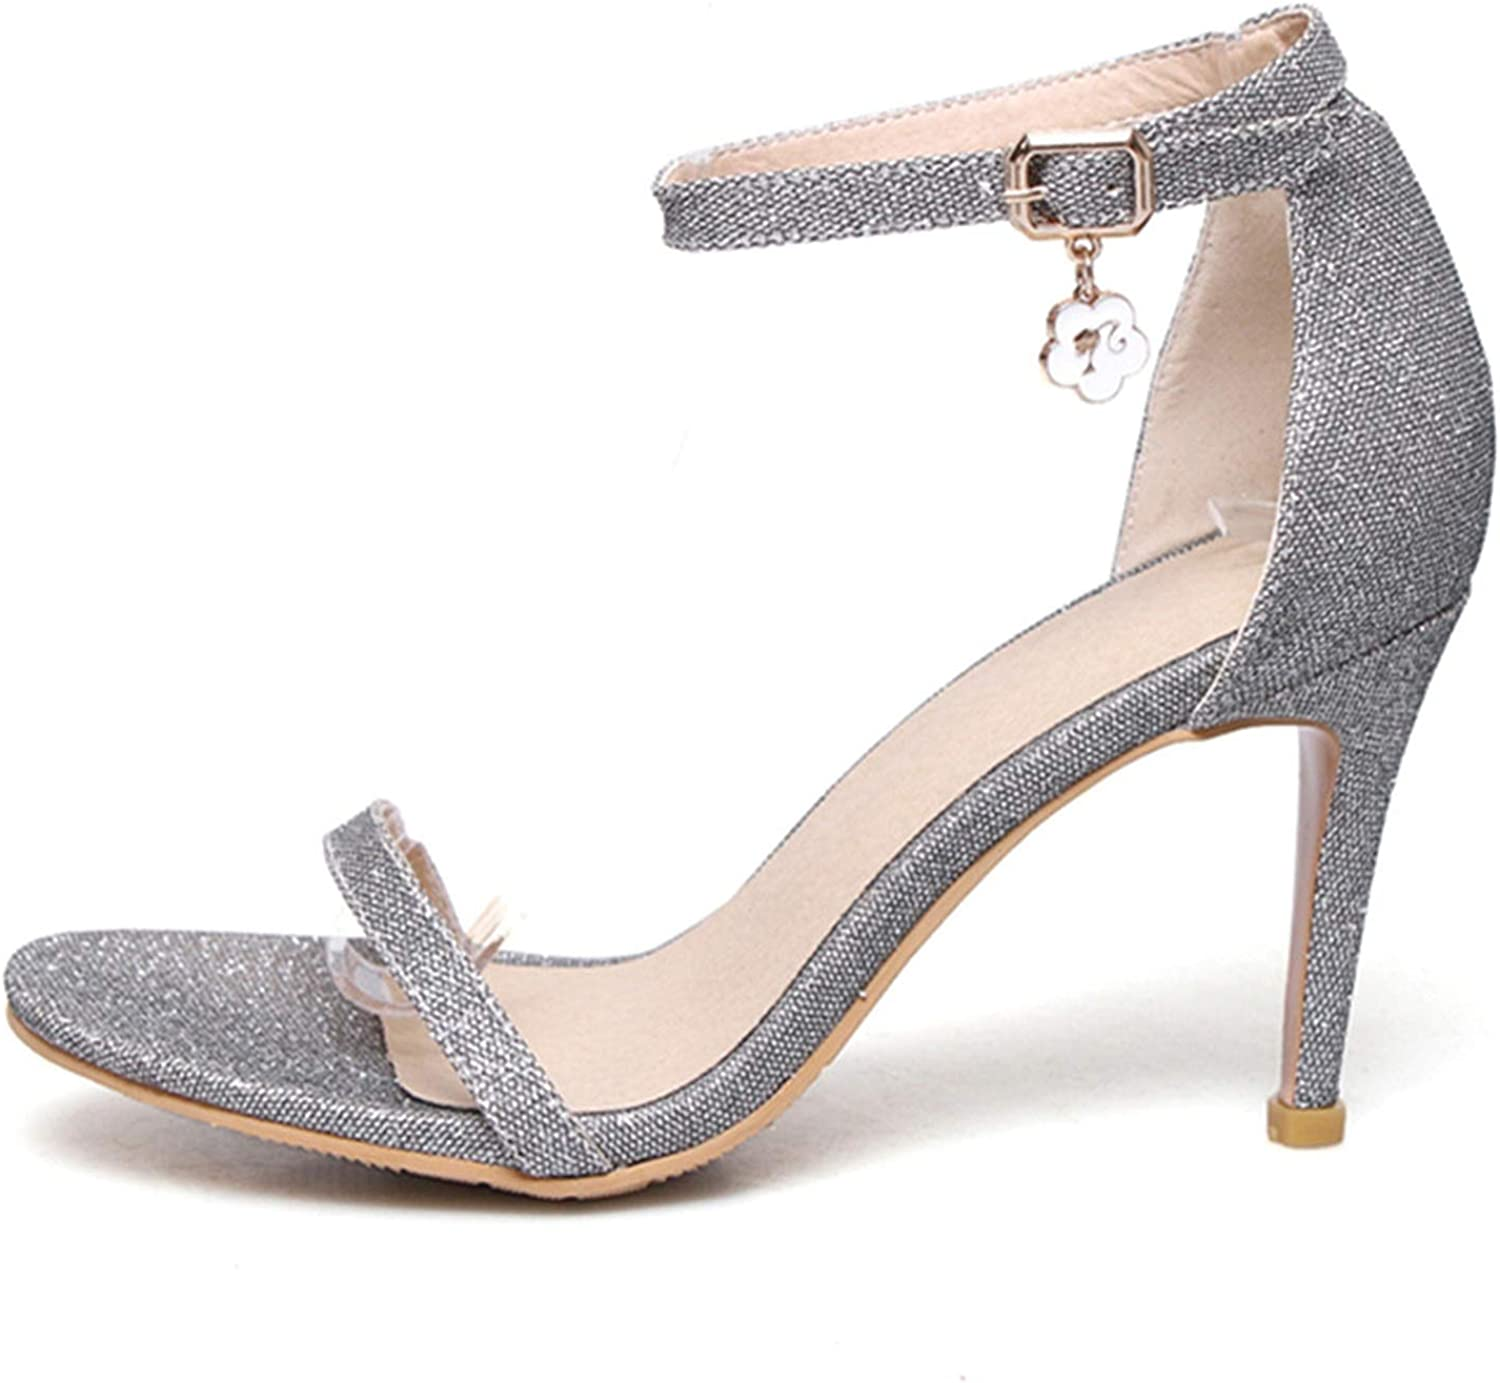 bluee Skieses 2019 Women Sandals Simple Buckle Summer Cover Heel Solid Sexy Party Wedding shoes Size 33-47